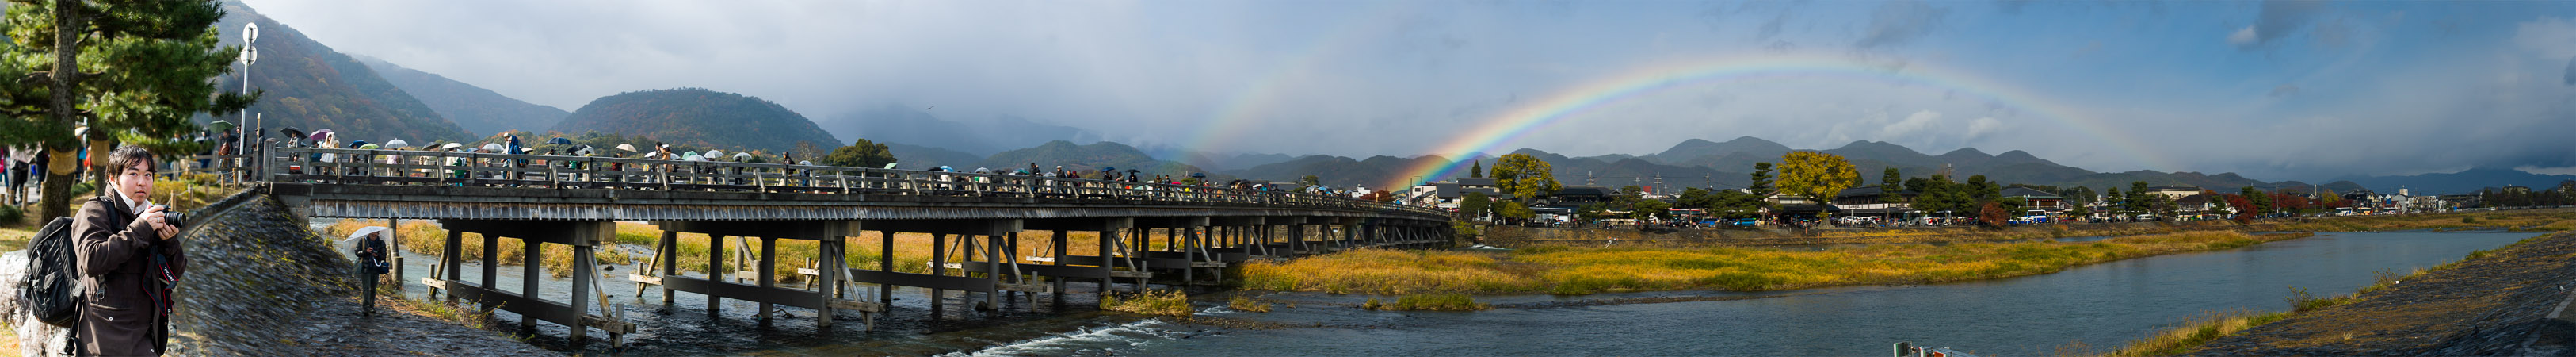 Arashiyama (嵐山)  --  Kyoto, Japan  --  Copyright 2012 Jeffrey Friedl, http://regex.info/blog/